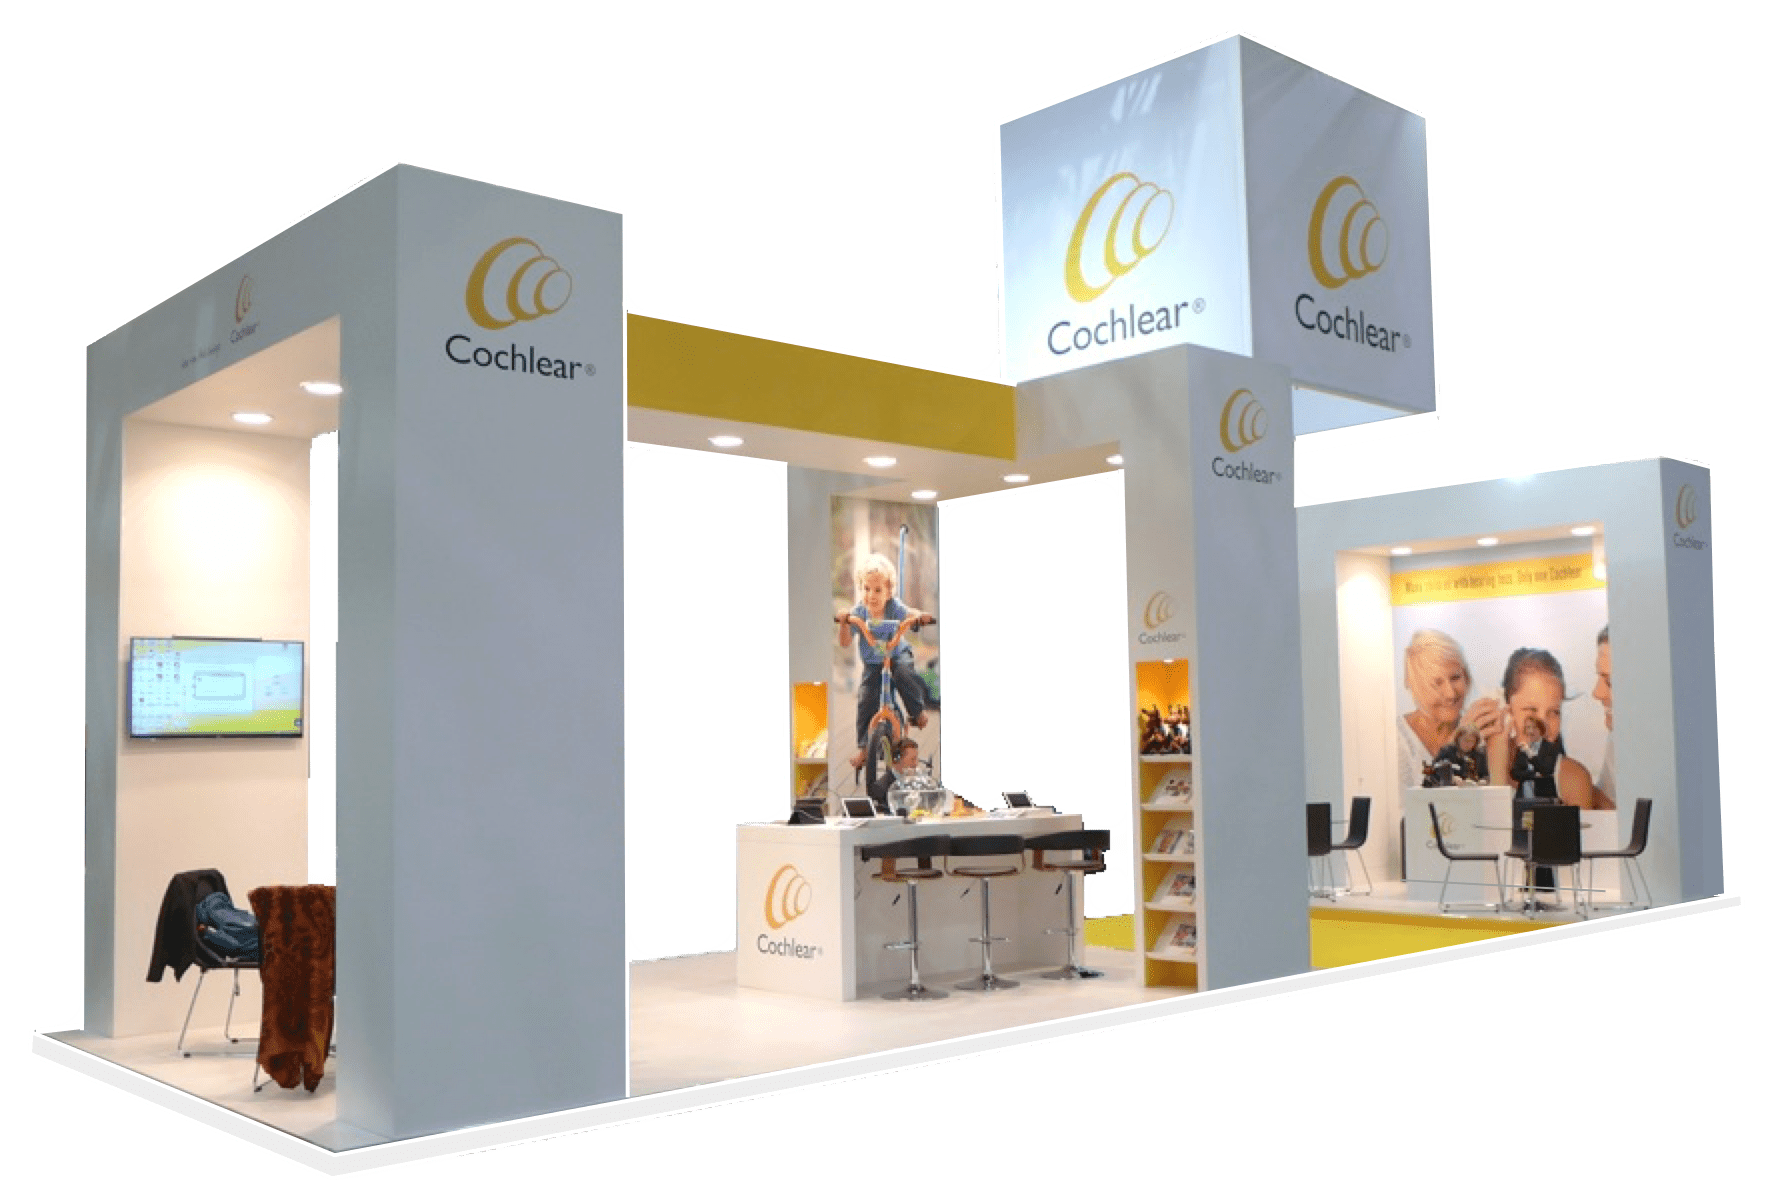 Exhibition Stand Builders Dublin : O brien expo services obexpo ie ireland s exhibition and